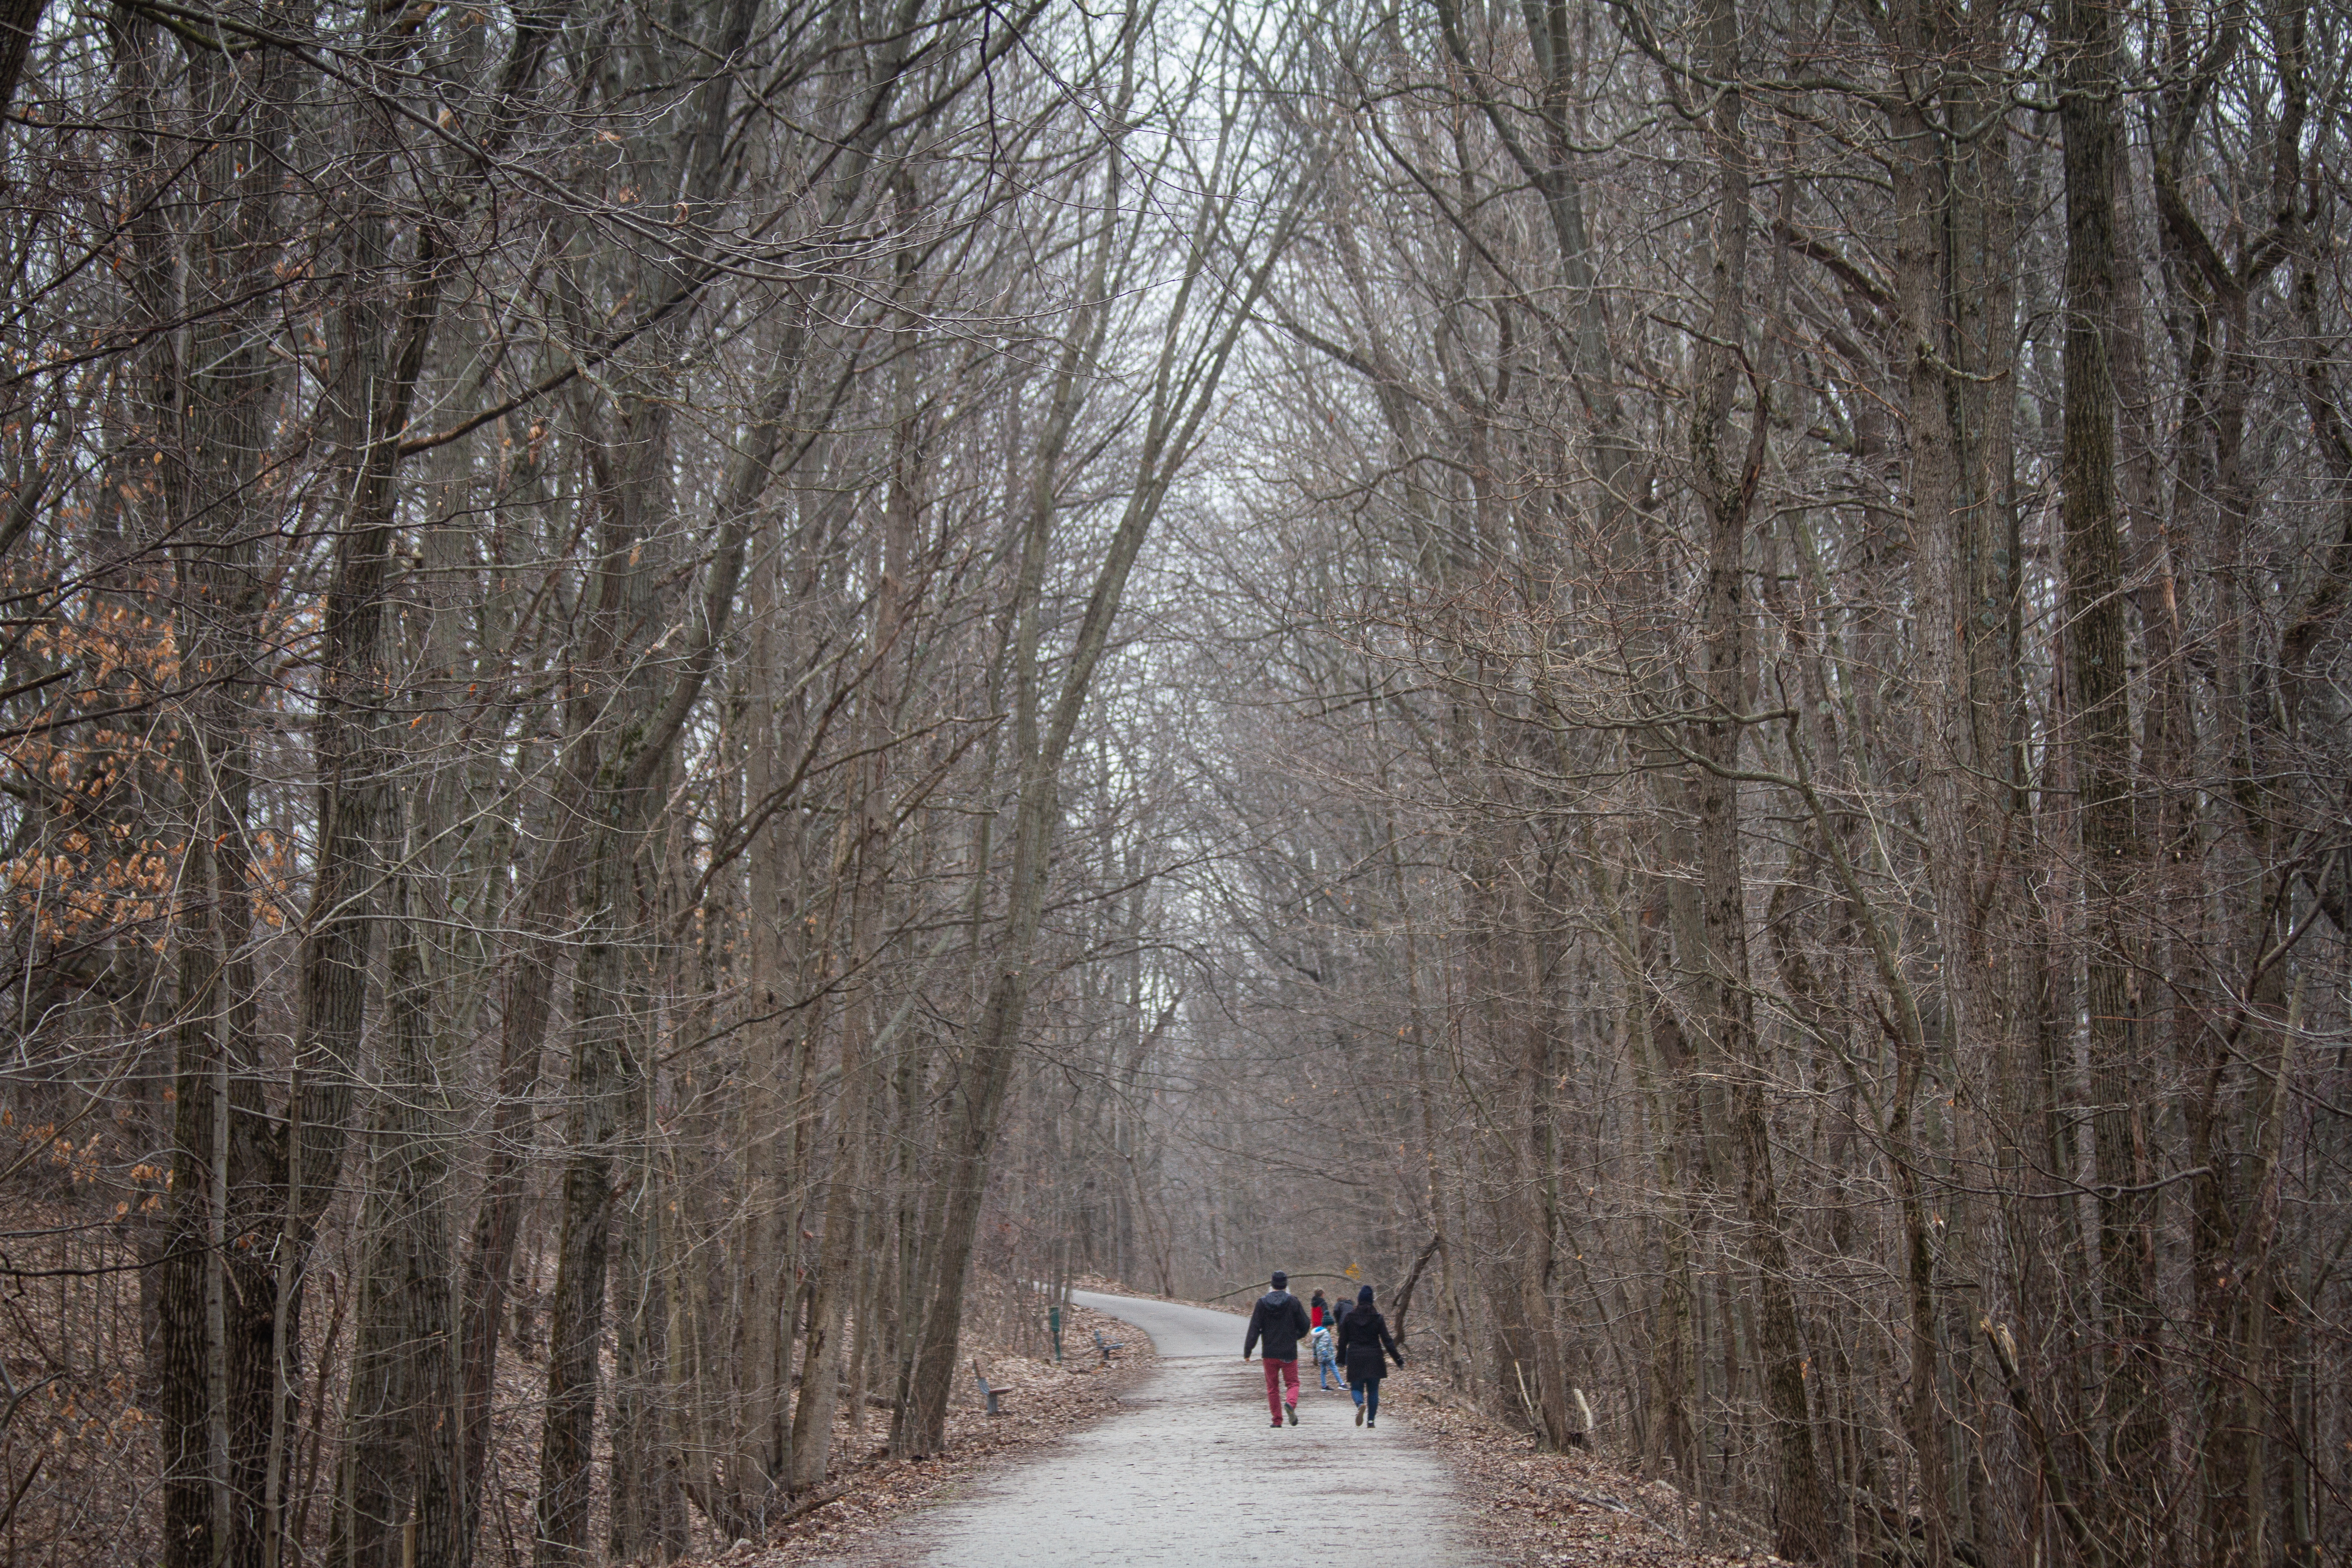 The Hillman Family takes a walk on the Kal-Haven trail at Kal-Haven State Park on Wednesday, March 25.{ }(WWMT/Sarah White)